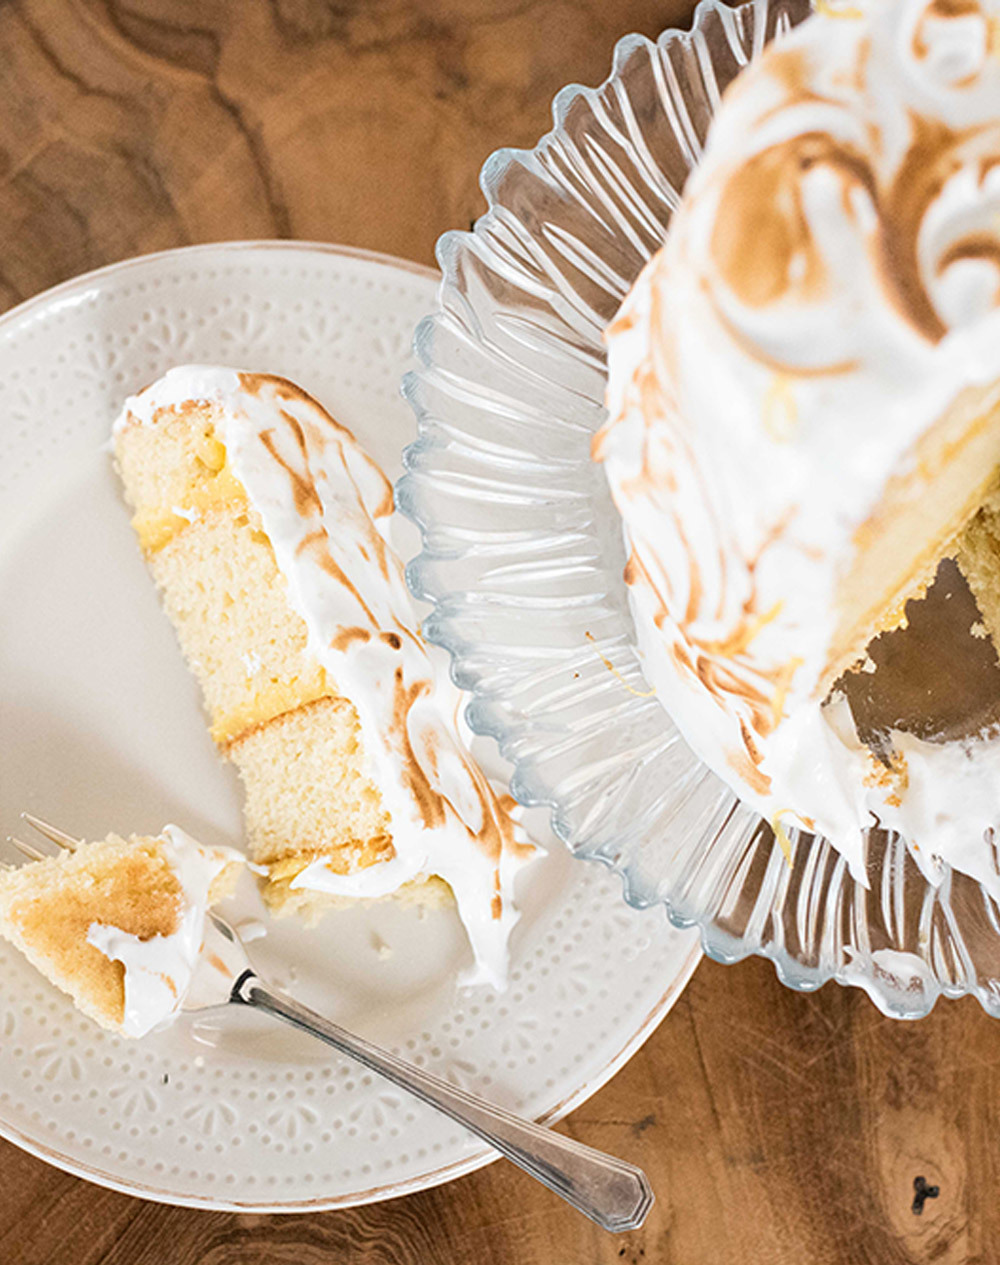 Kates' Lemon Meringue Cake